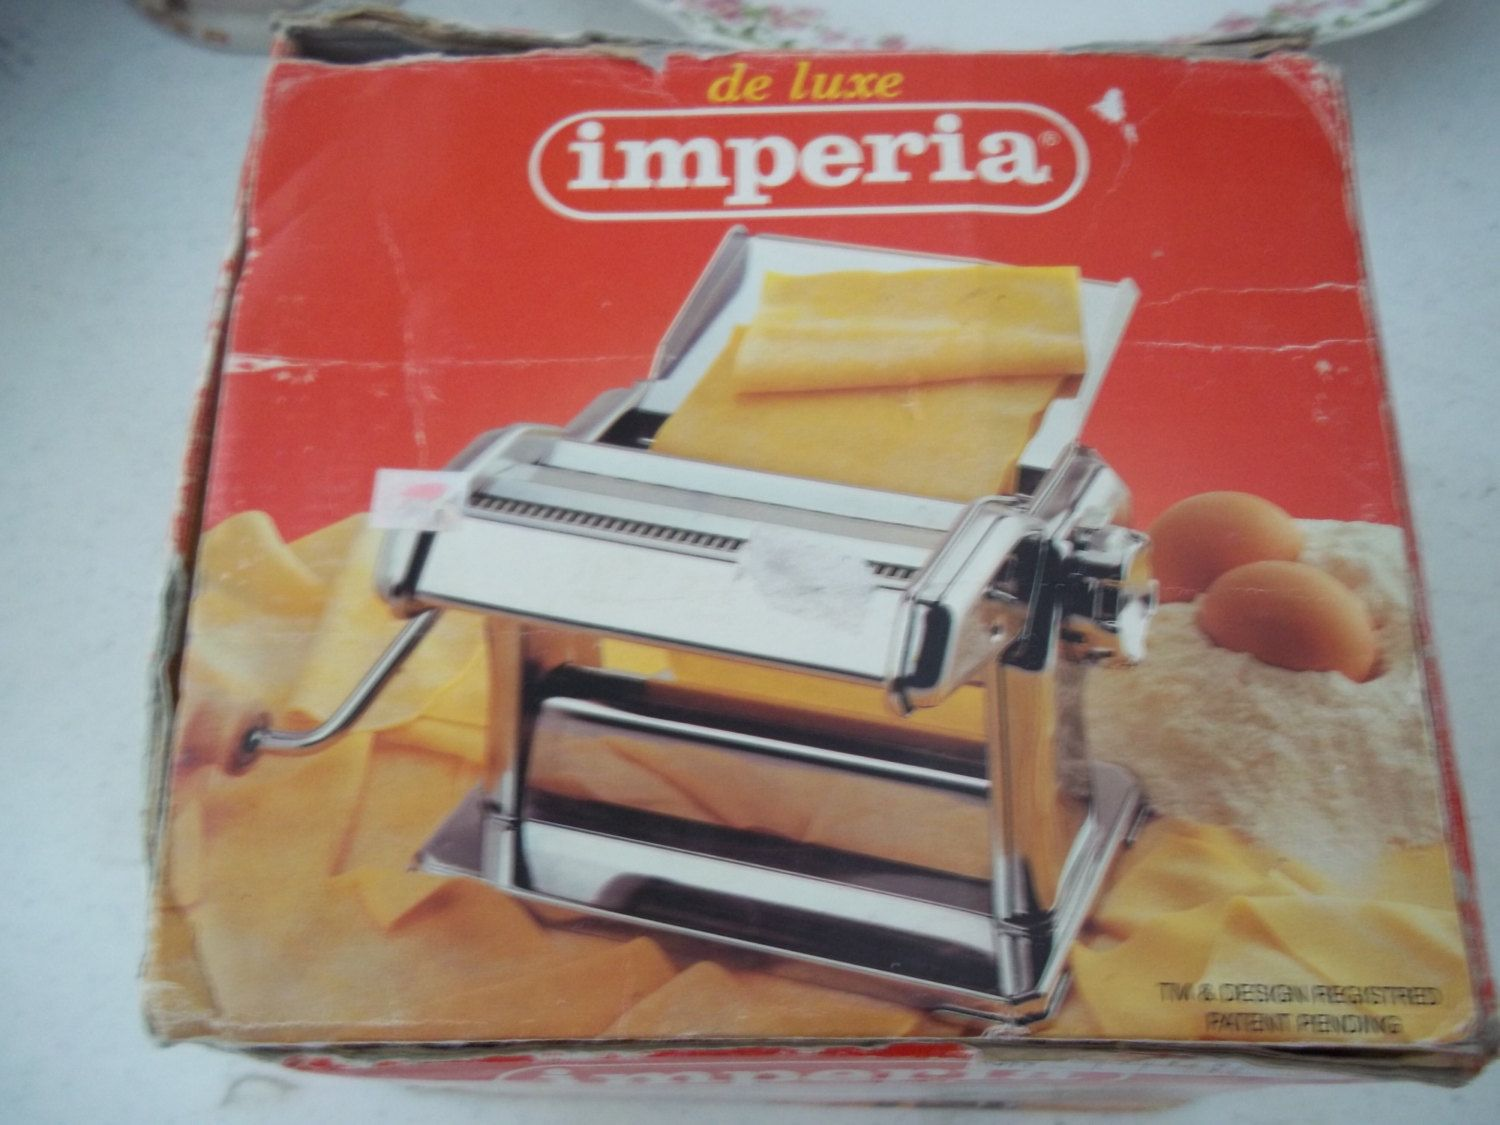 Imperia SP150 De Luxe Pasta Maker Machine Cutter Angel Hair Italy EXCELLENT by APassion4Antiques on Etsy